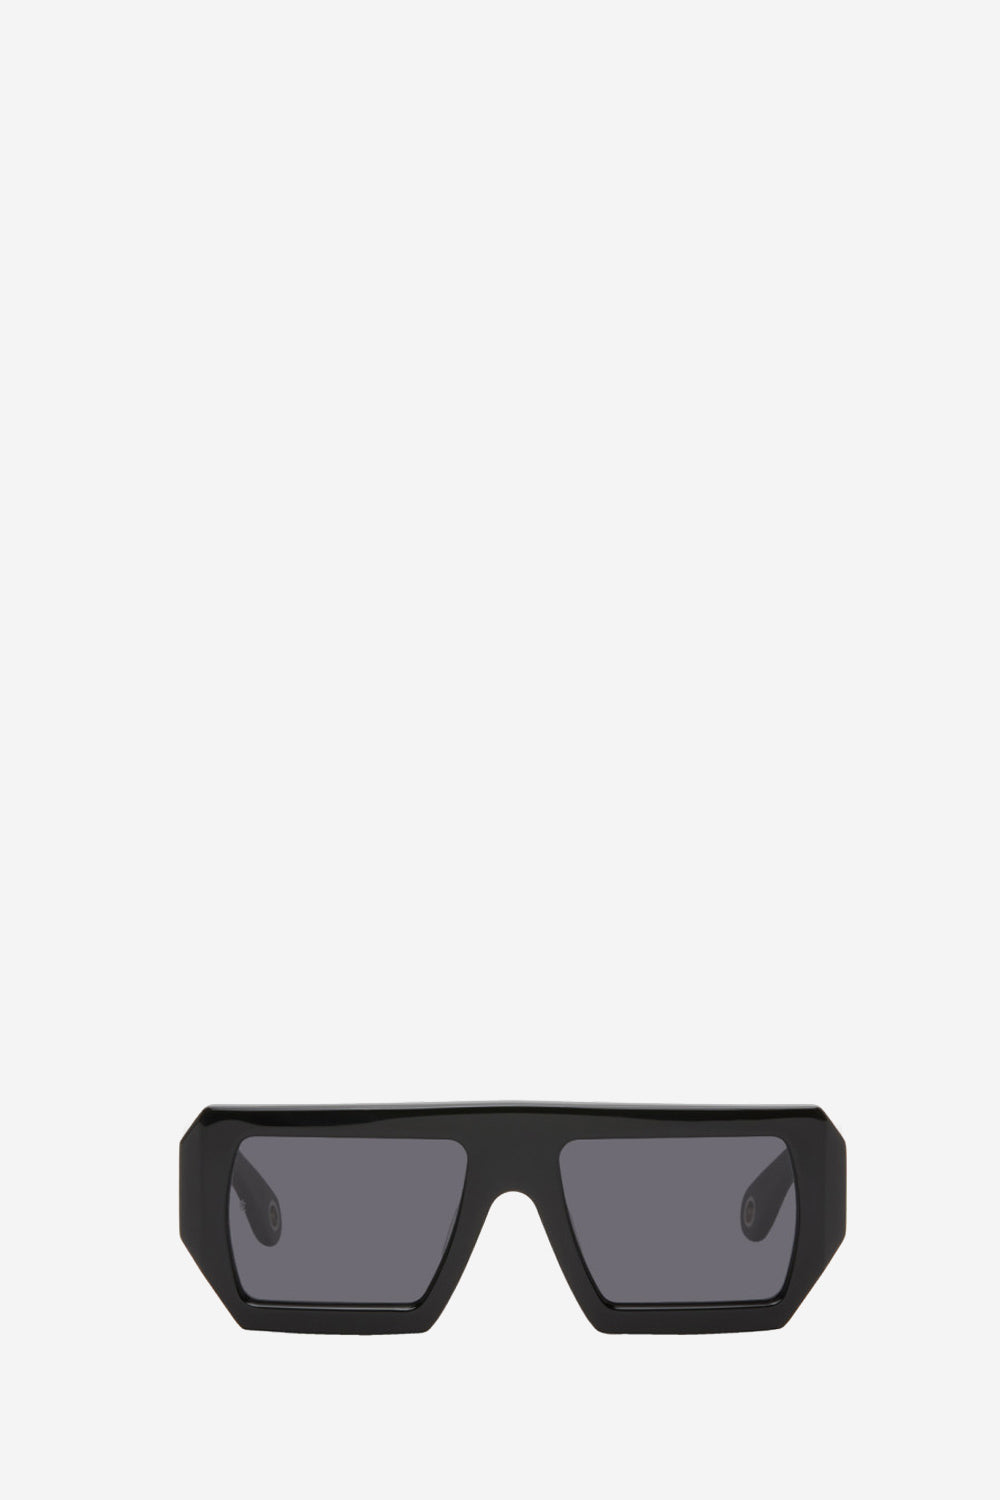 Sauvage Black Sunglasses